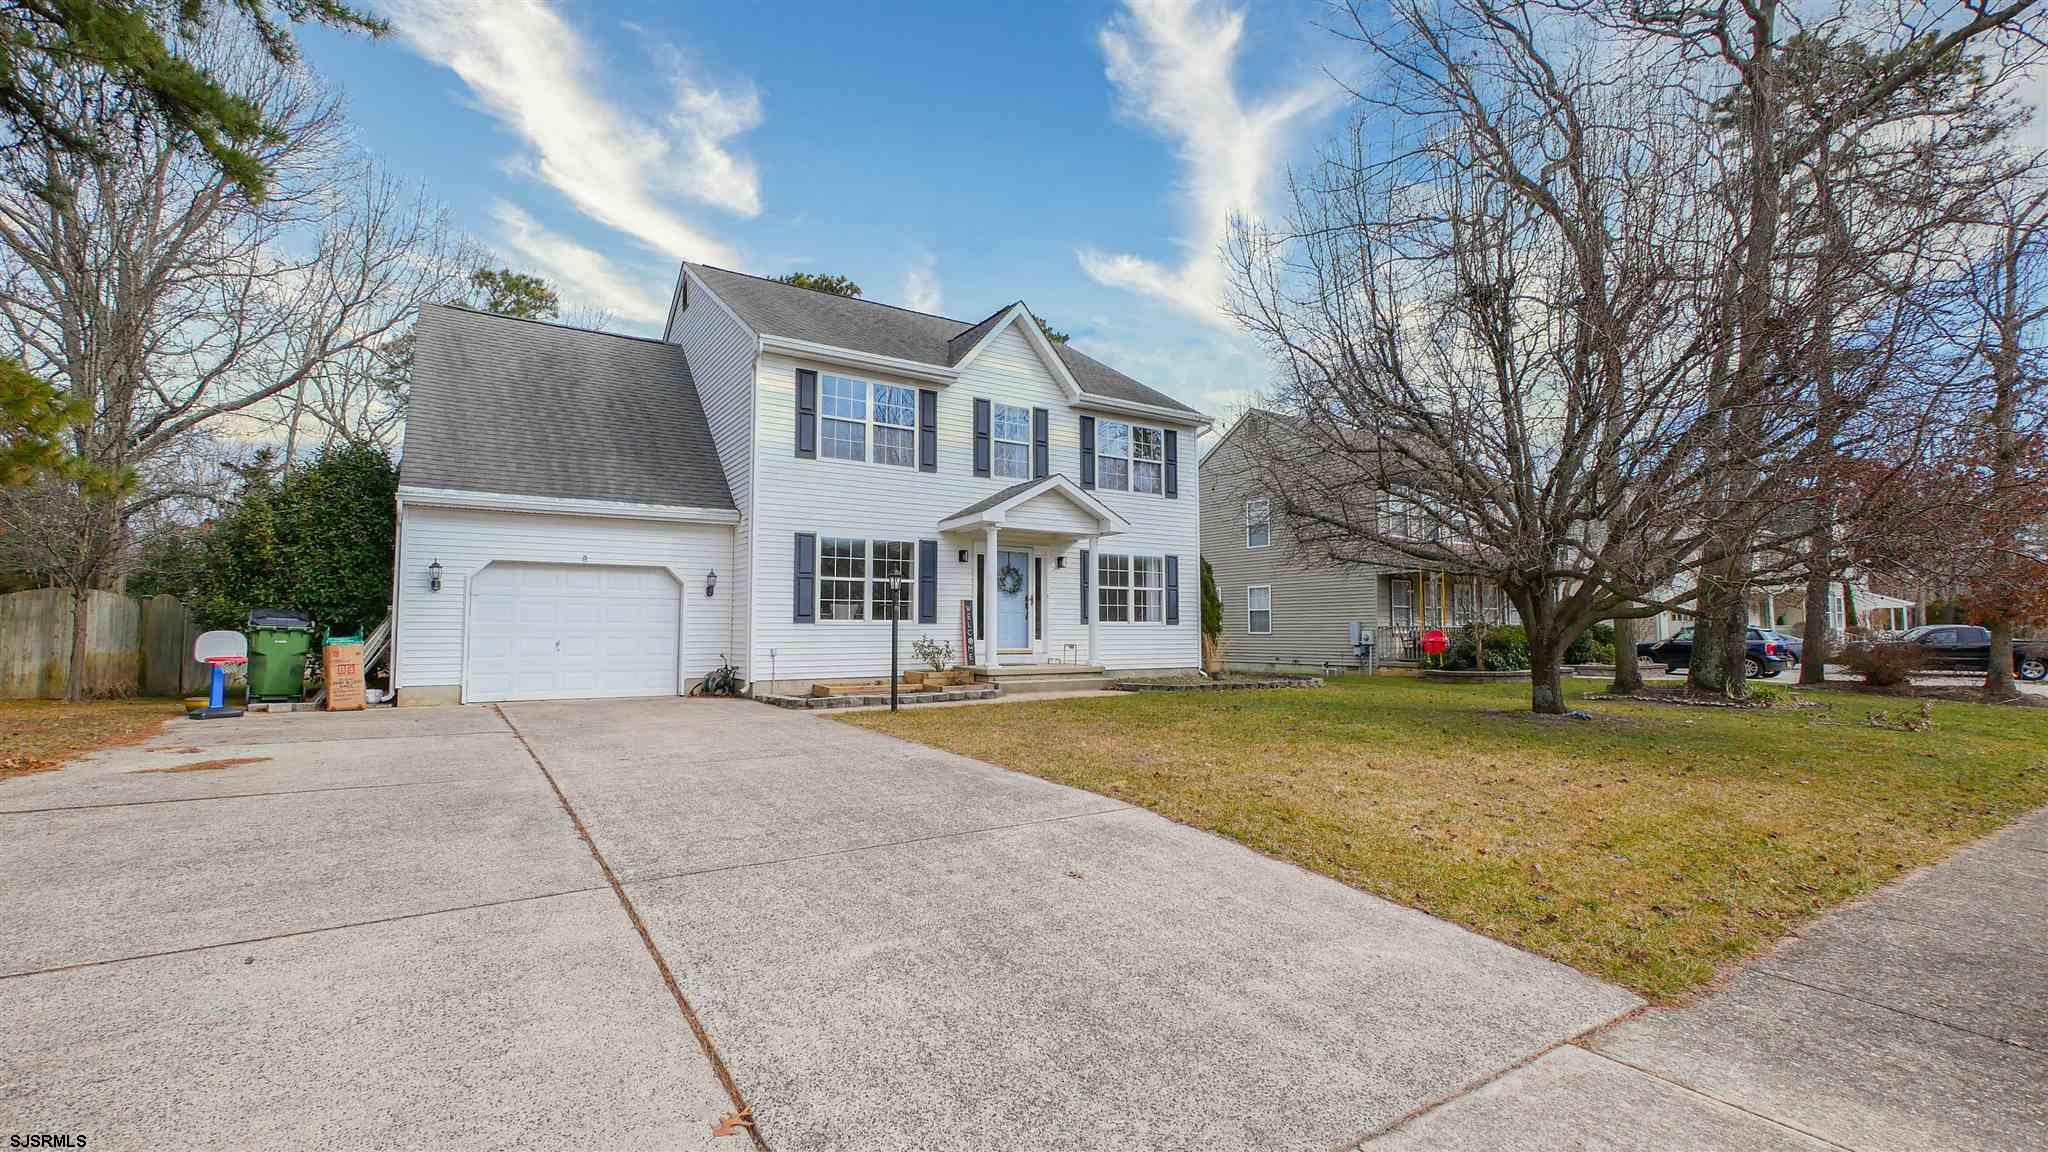 LOOKING FOR YOUR DREAM HOME? LOOK NO FURTHER! This two-story 4 Bedroom home sits on the entry to a C